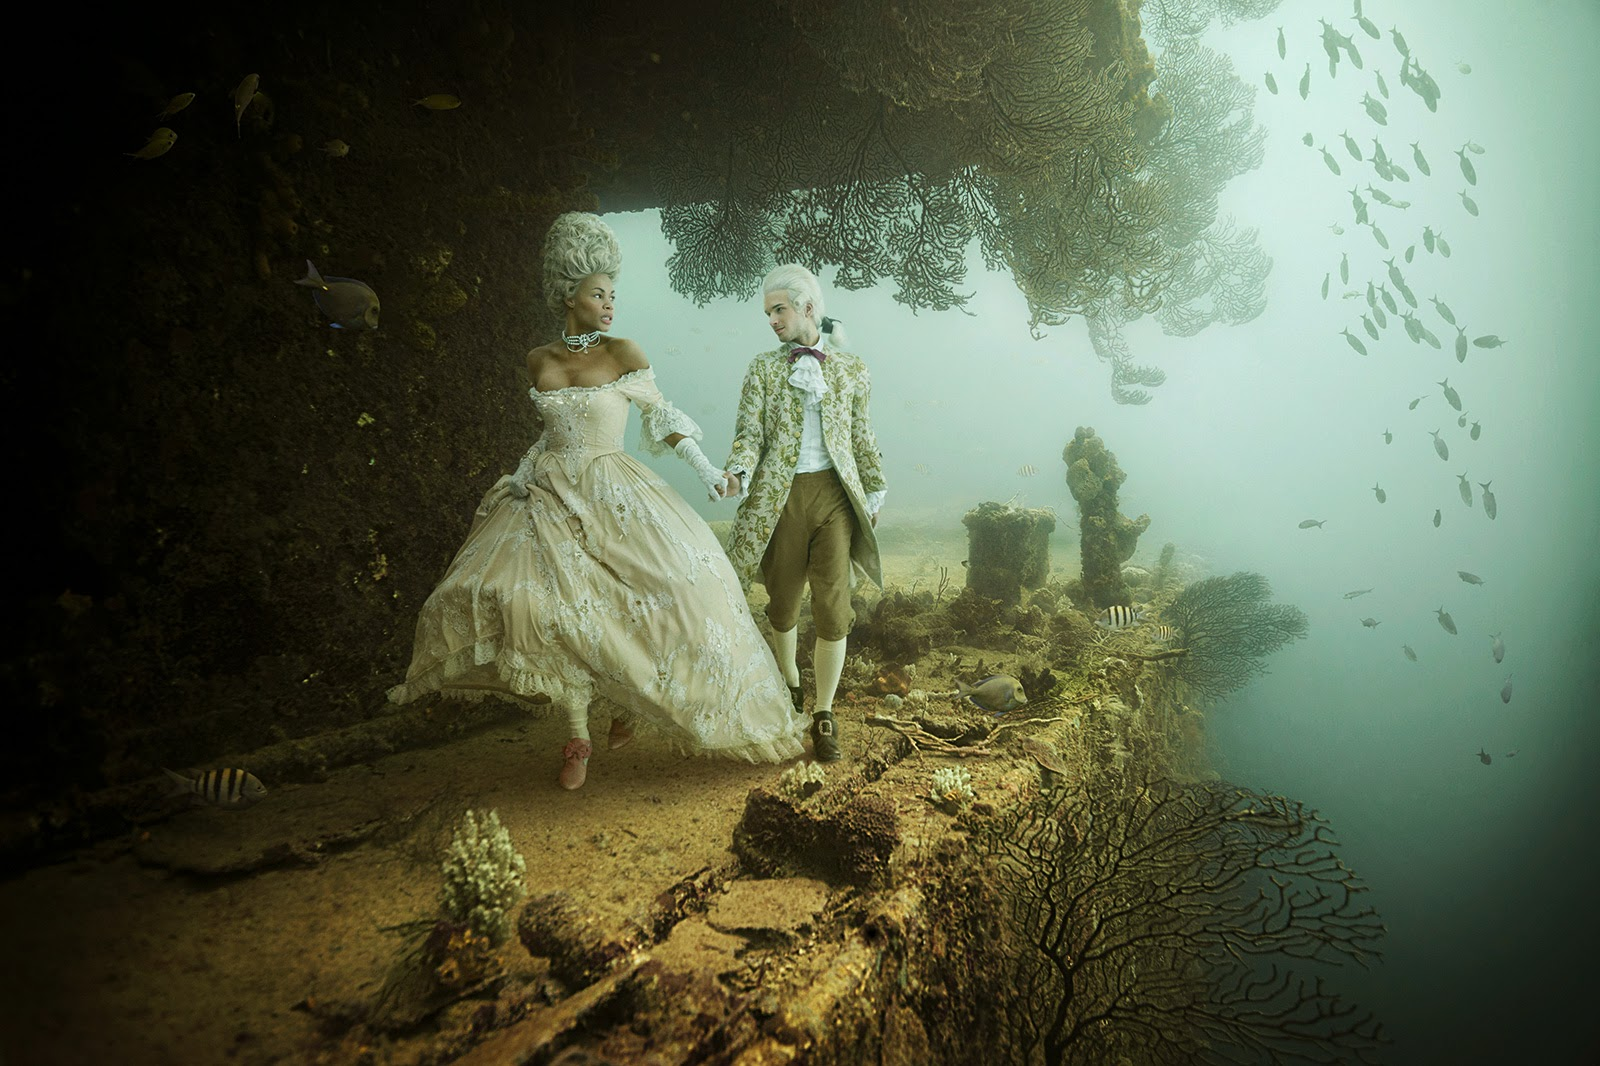 05-Andreas-Franke-Surreal-Artificial-Reef-Photography-www-designstack-co